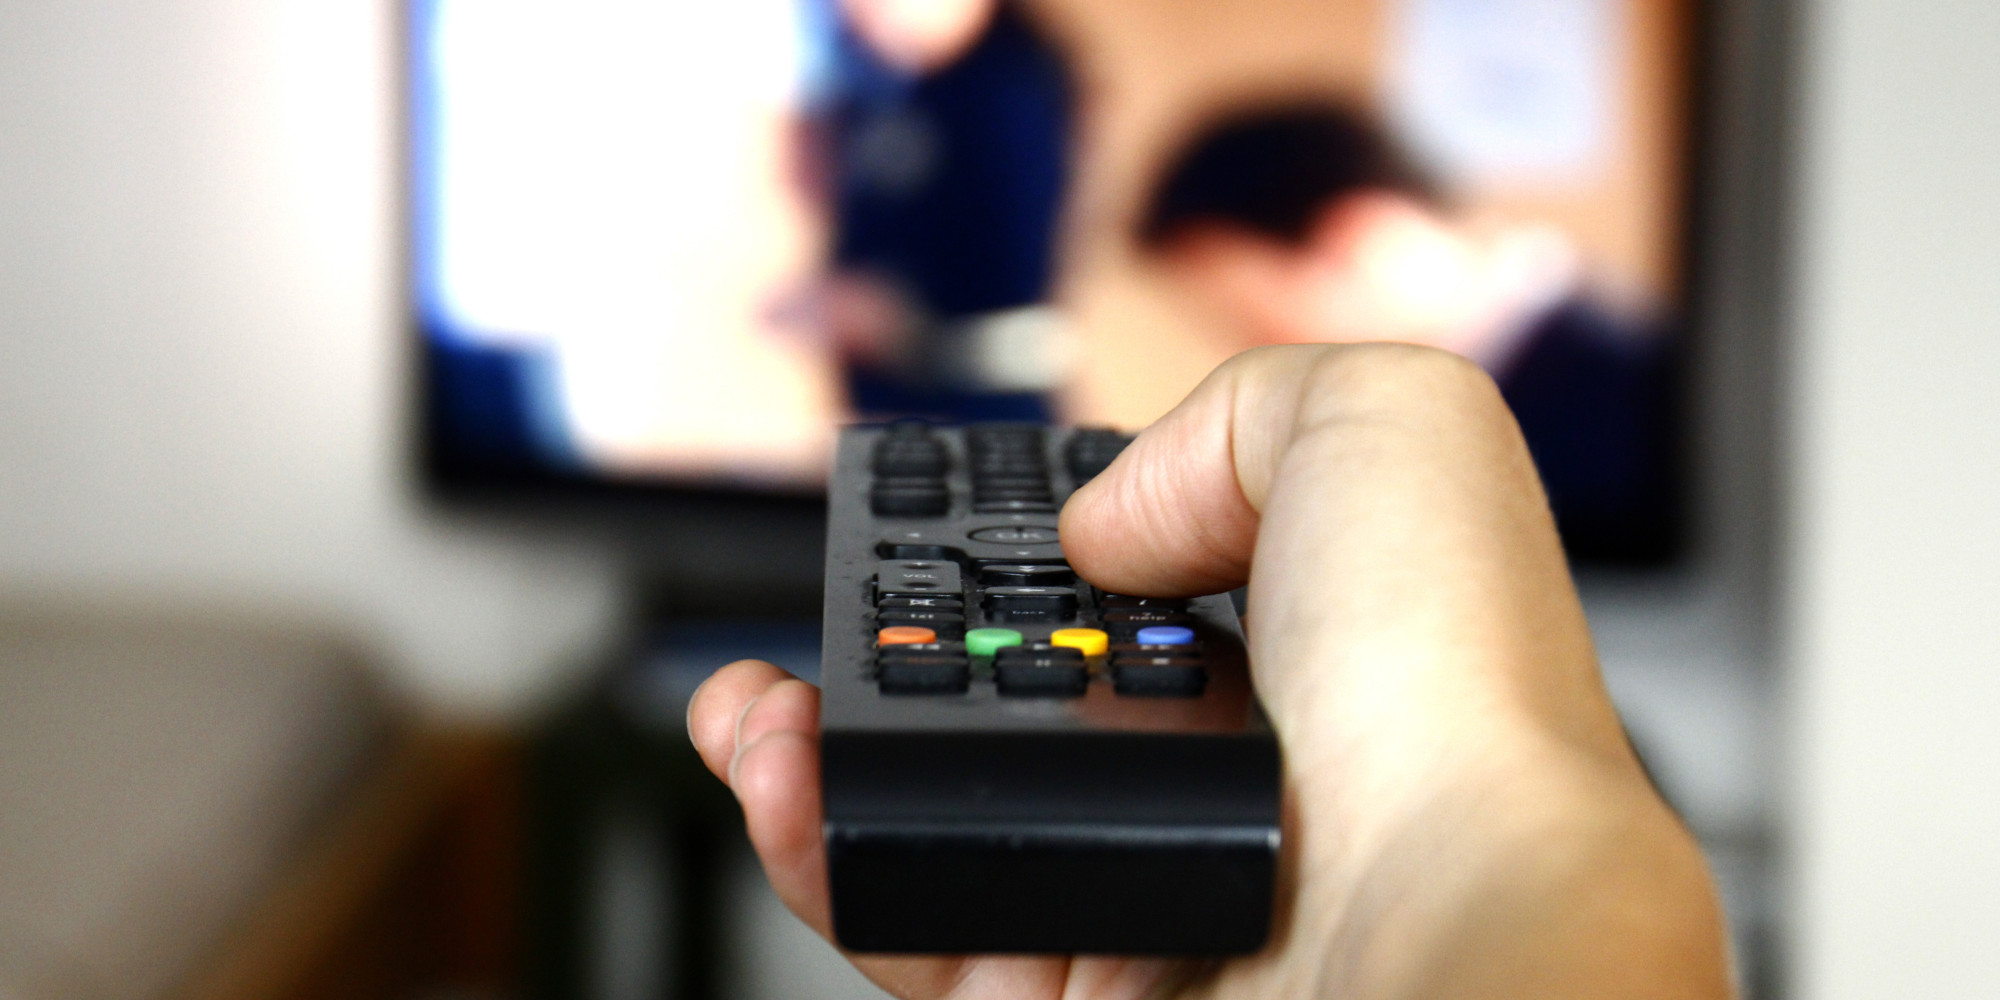 Digital vs Television – a thought experiment